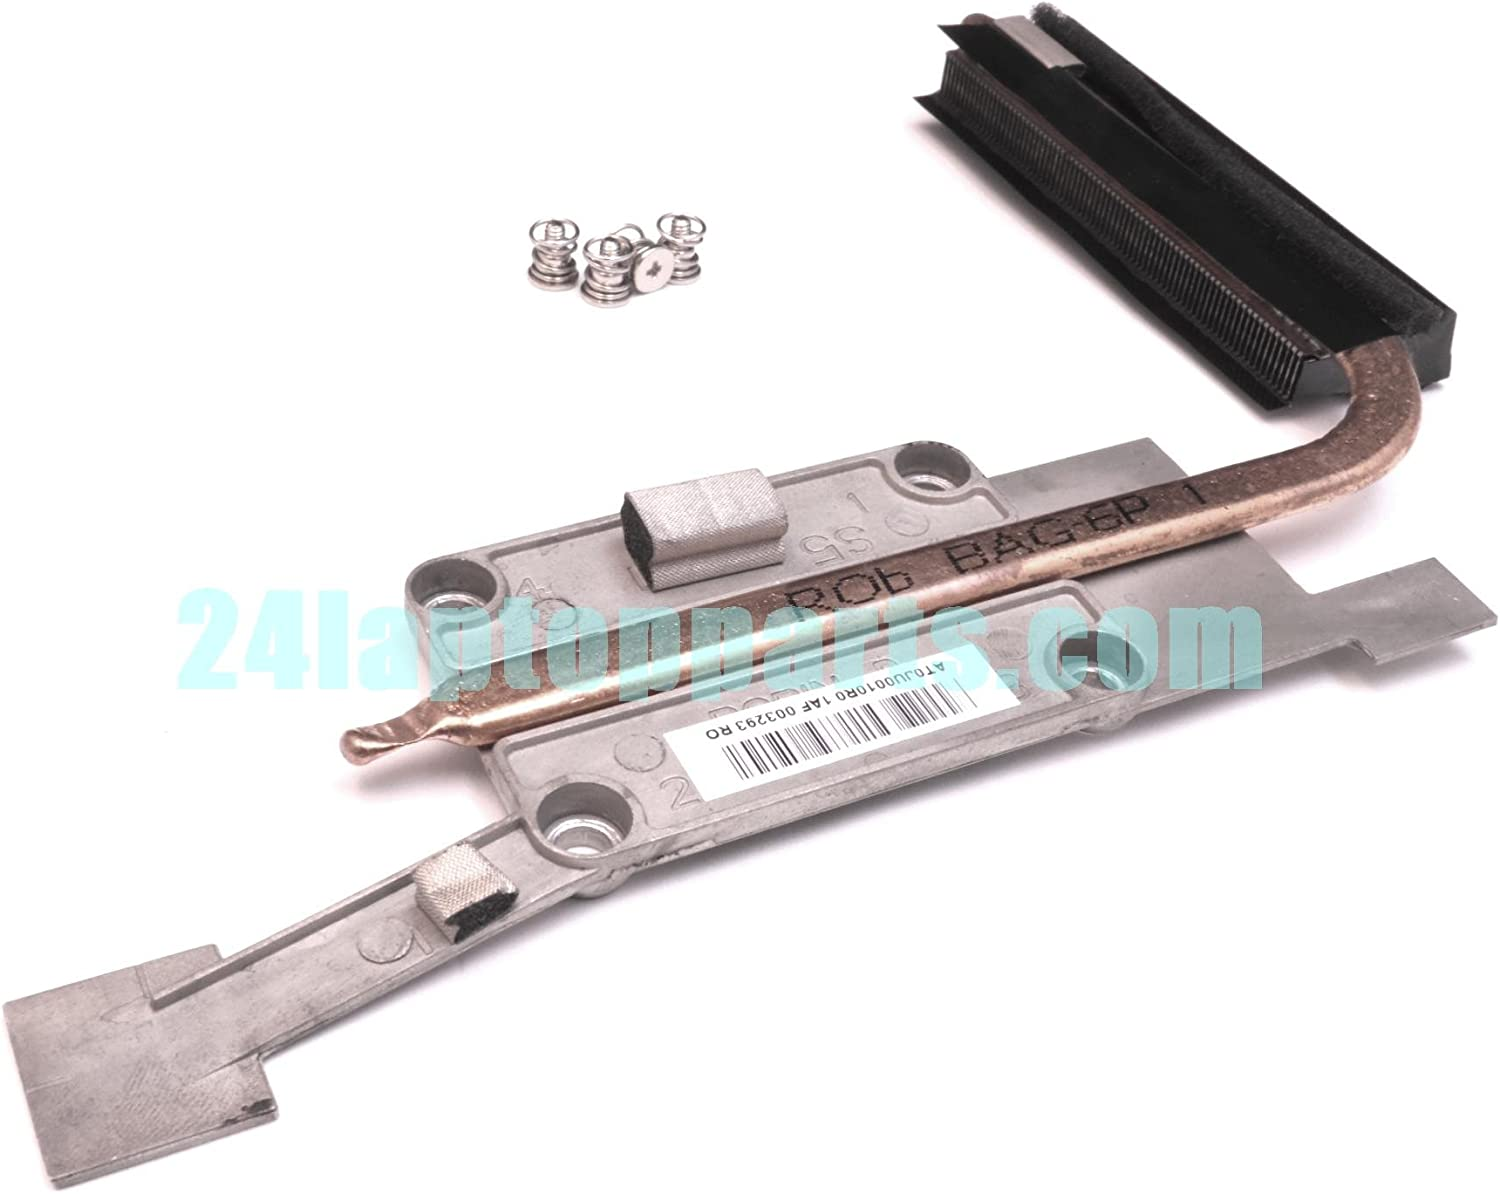 Acer Aspire V3 Series Laptop Heatsink- AT0JU0010R0